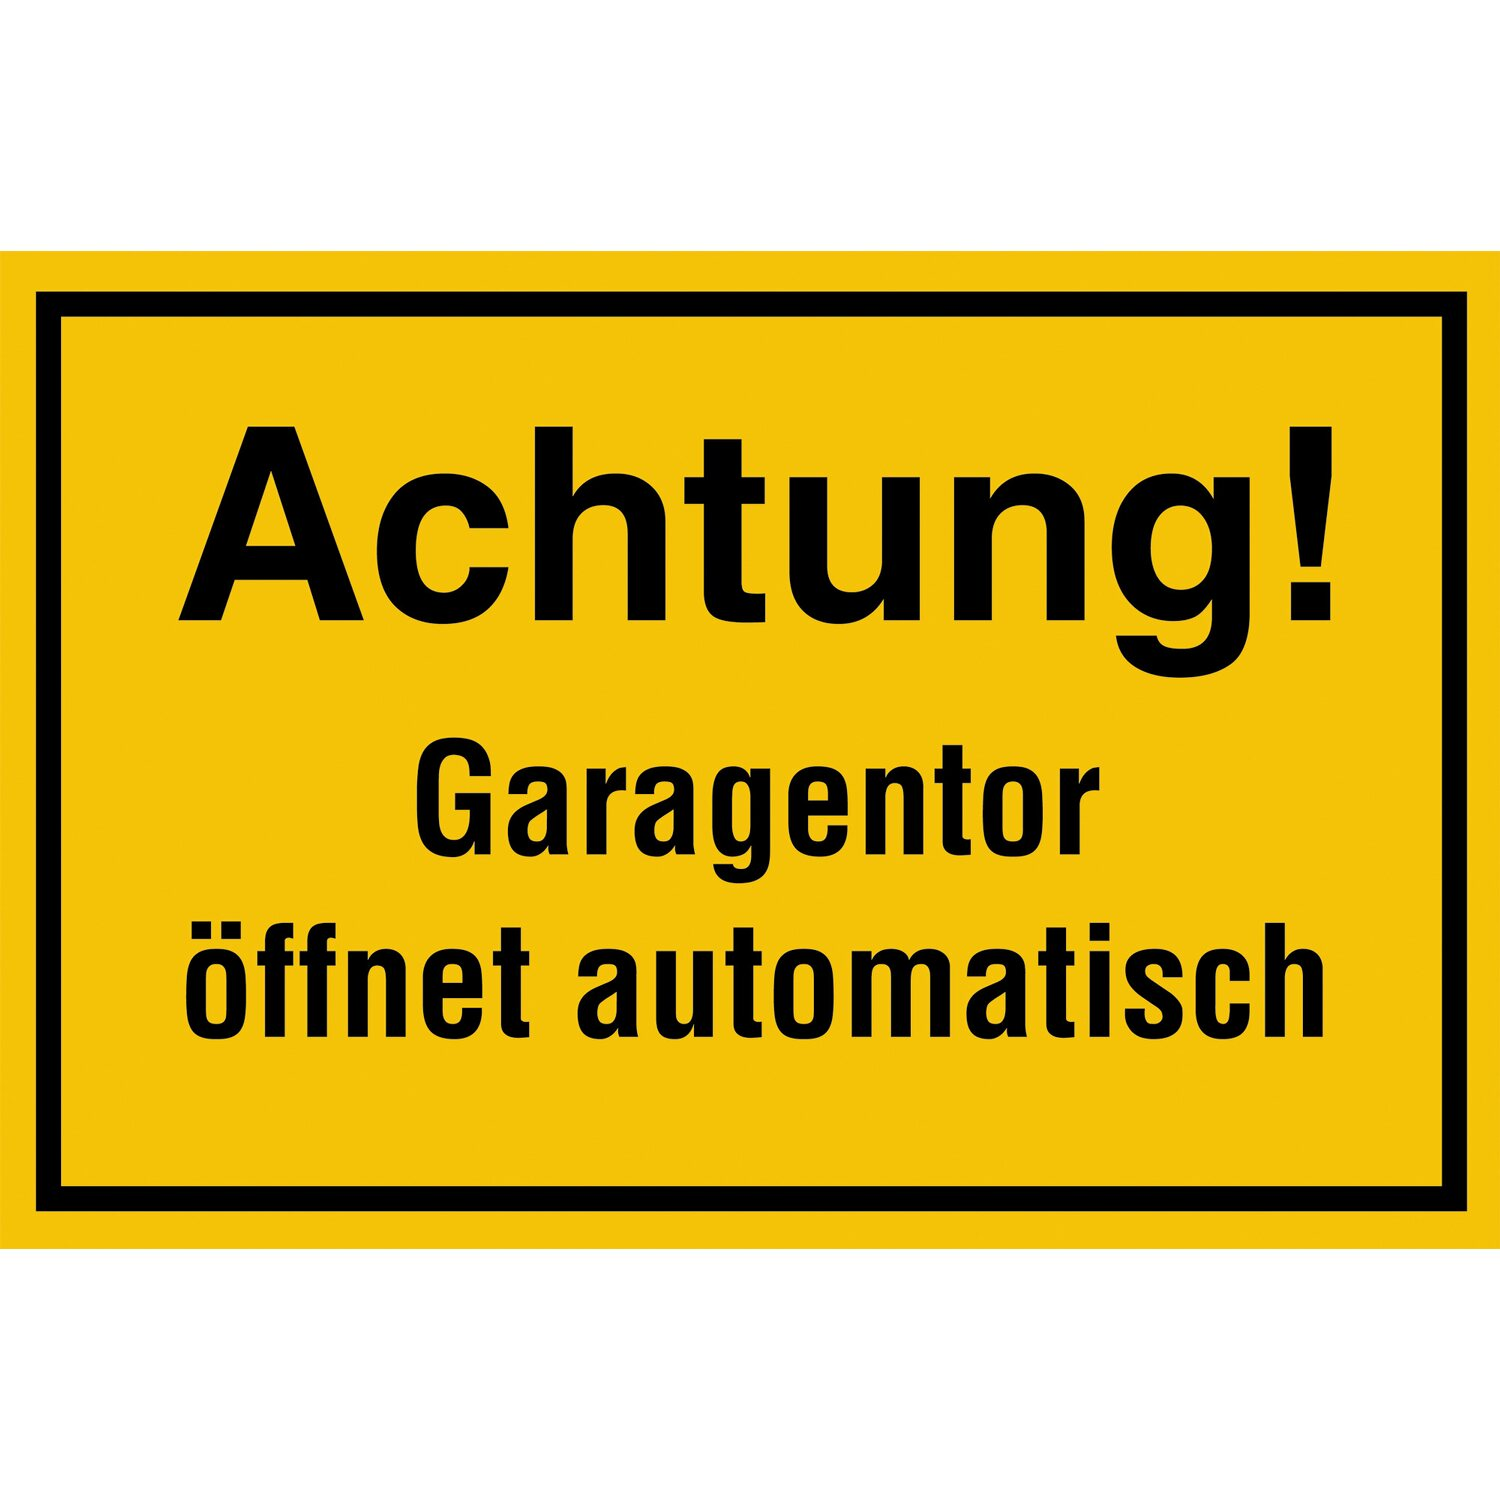 schild achtung garagentor ffnet automatisch 20 cm x 30 cm kaufen bei obi. Black Bedroom Furniture Sets. Home Design Ideas